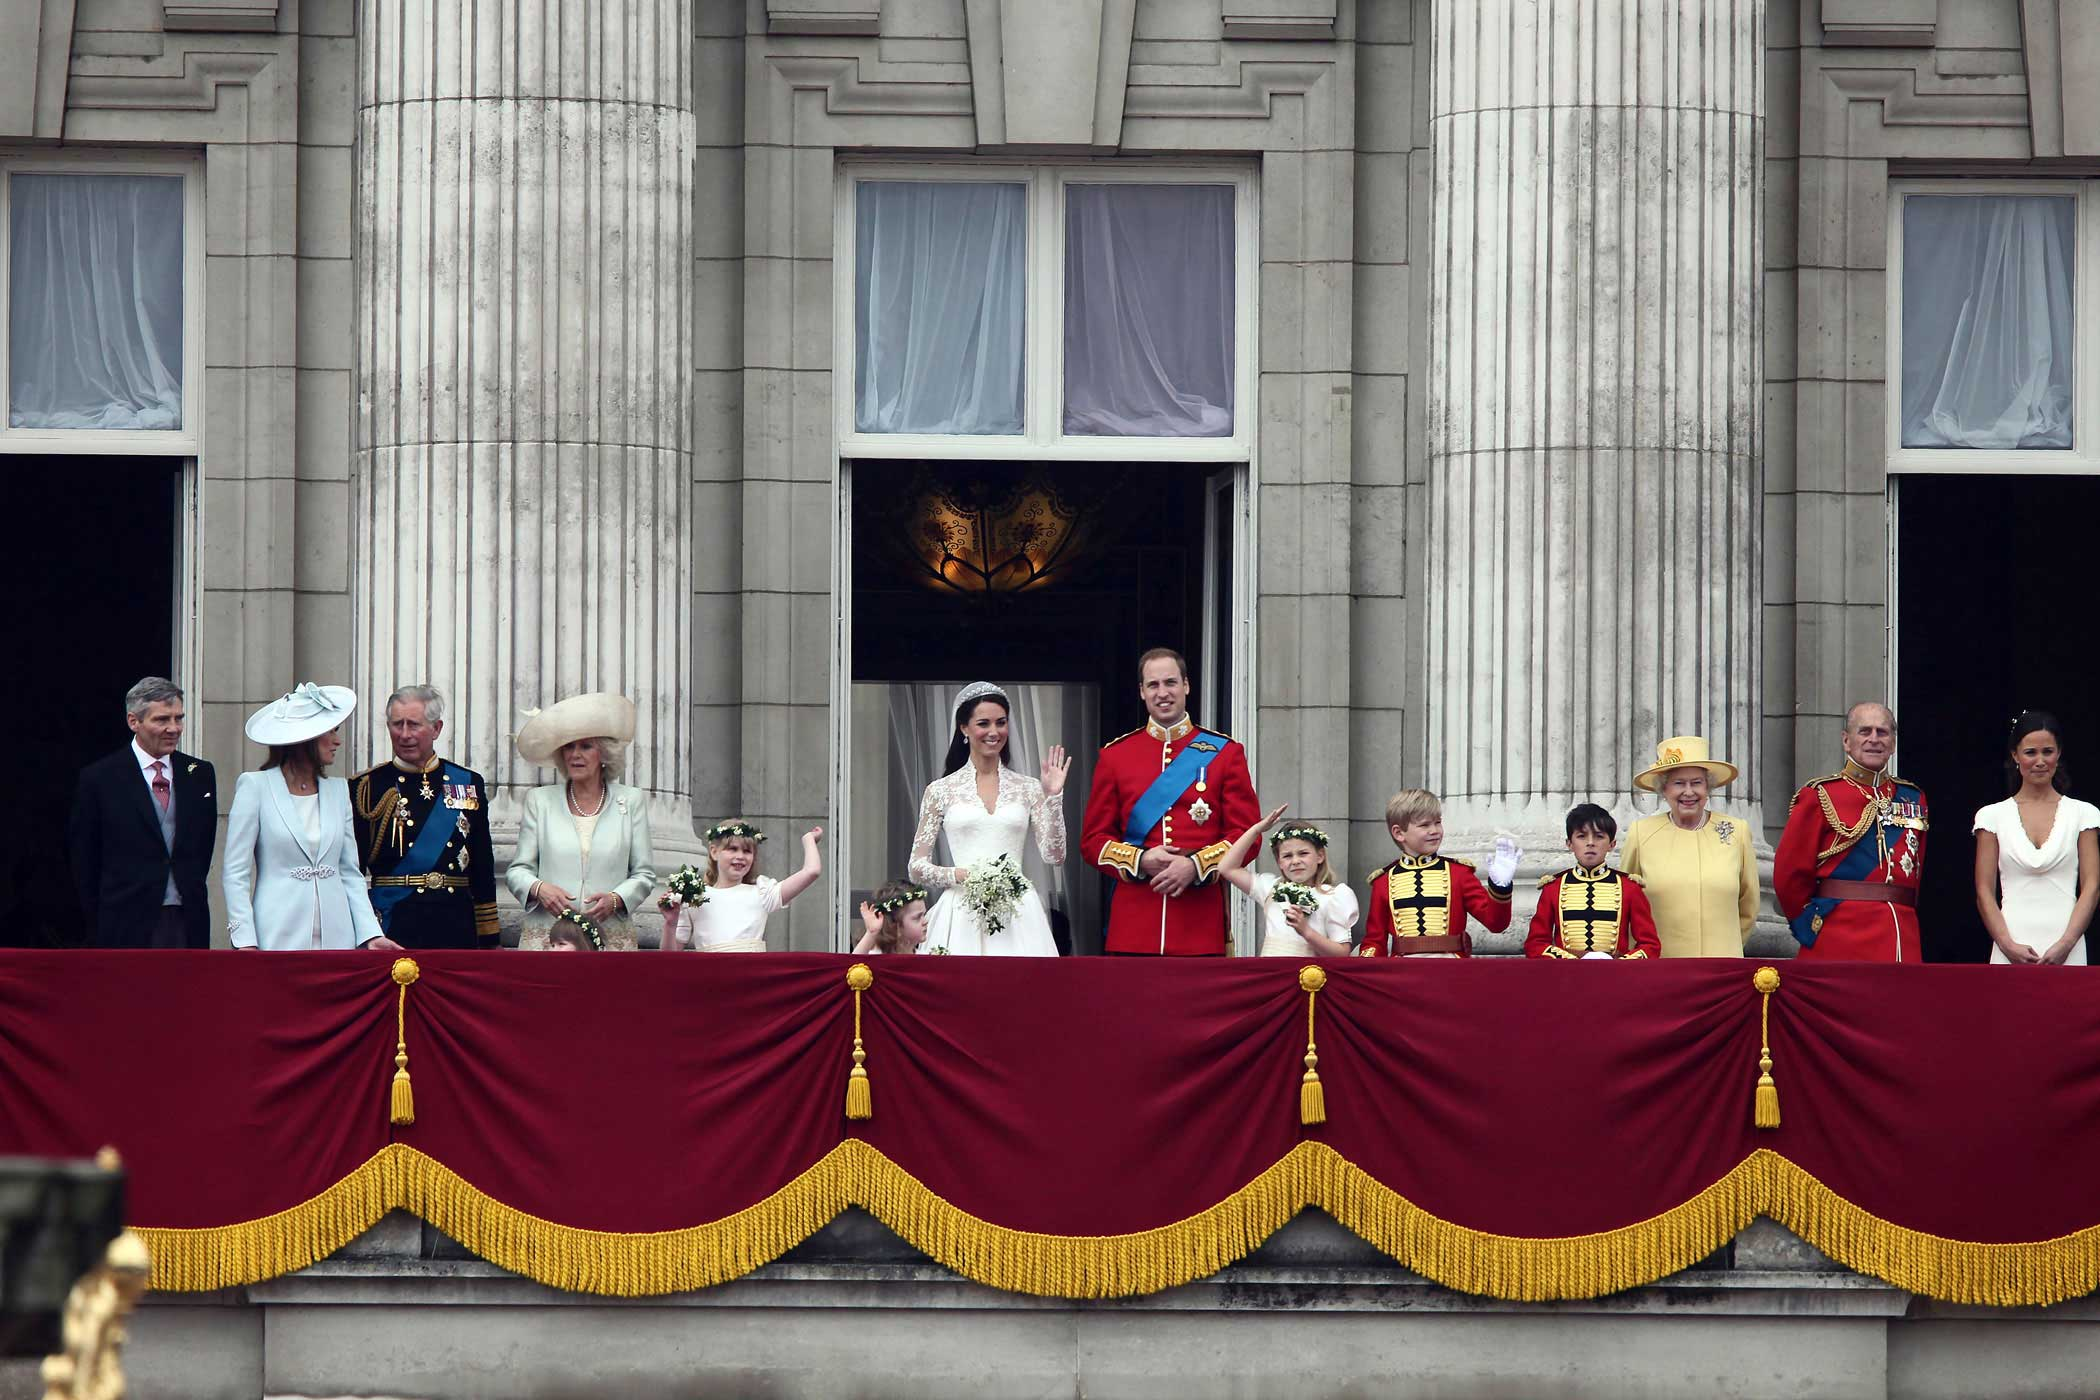 "Prince William stands with his bride, Catherine, Duchess of Cambridge, on a balcony at Buckingham Palace, surrounded by family, on April 29, 2011. The future King's marriage to his longtime girlfriend, a commoner by birth and the first female member of the royal family to graduate from a university, marked a shift in the mores of the monarchy. The Queen officially approved the marriage, as required under the Royal Marriages Act of 1772, by signing a document stating that she accepts the union between her grandson and the ""well-beloved"" Kate Middleton."